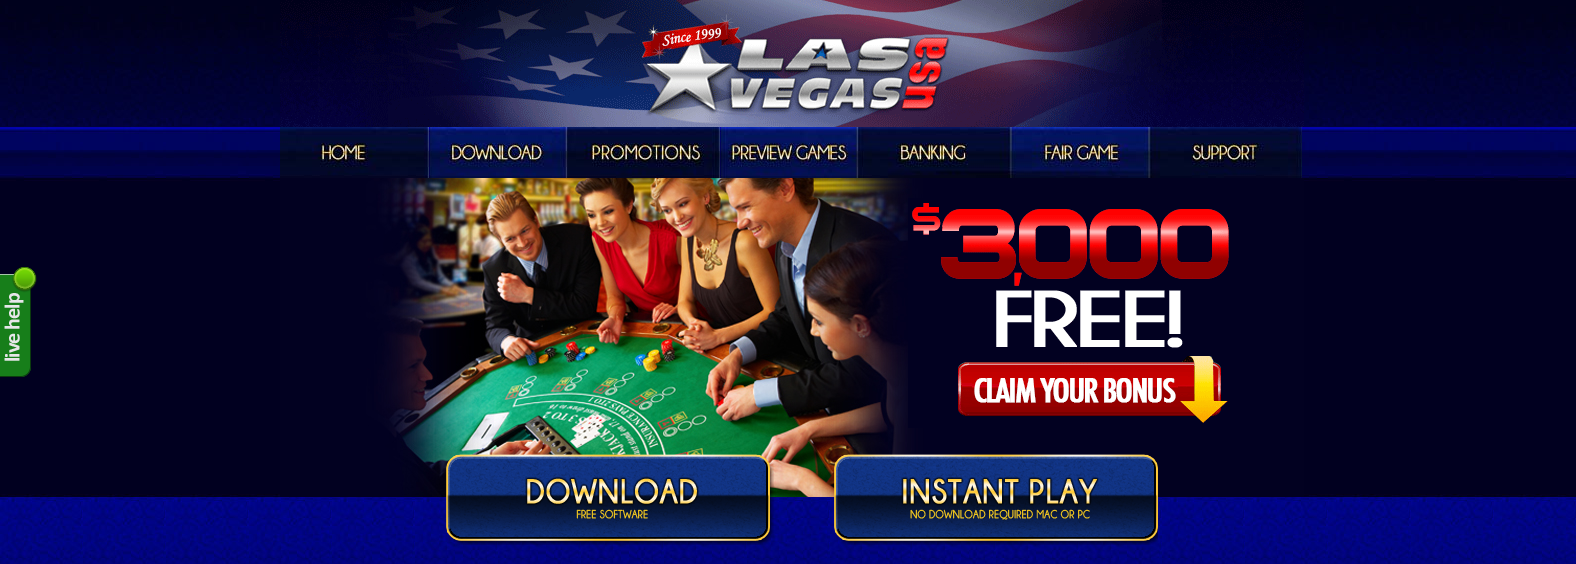 no download casino free spins